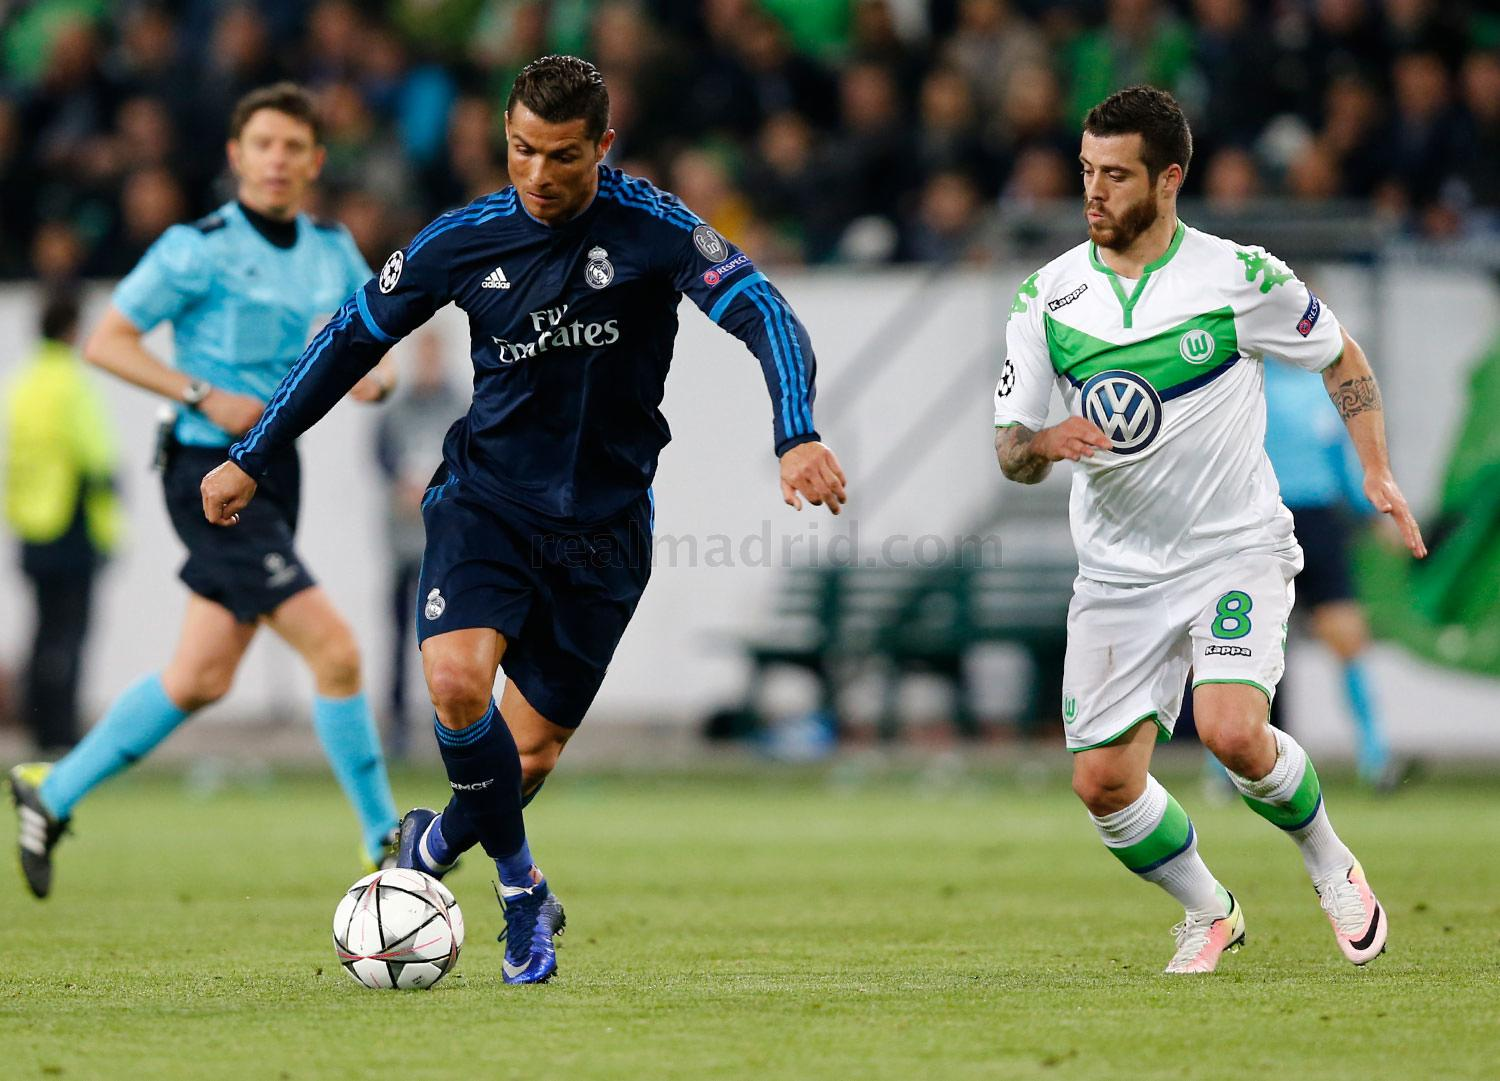 Real Madrid - Wolfsburgo - Real Madrid - 06-04-2016